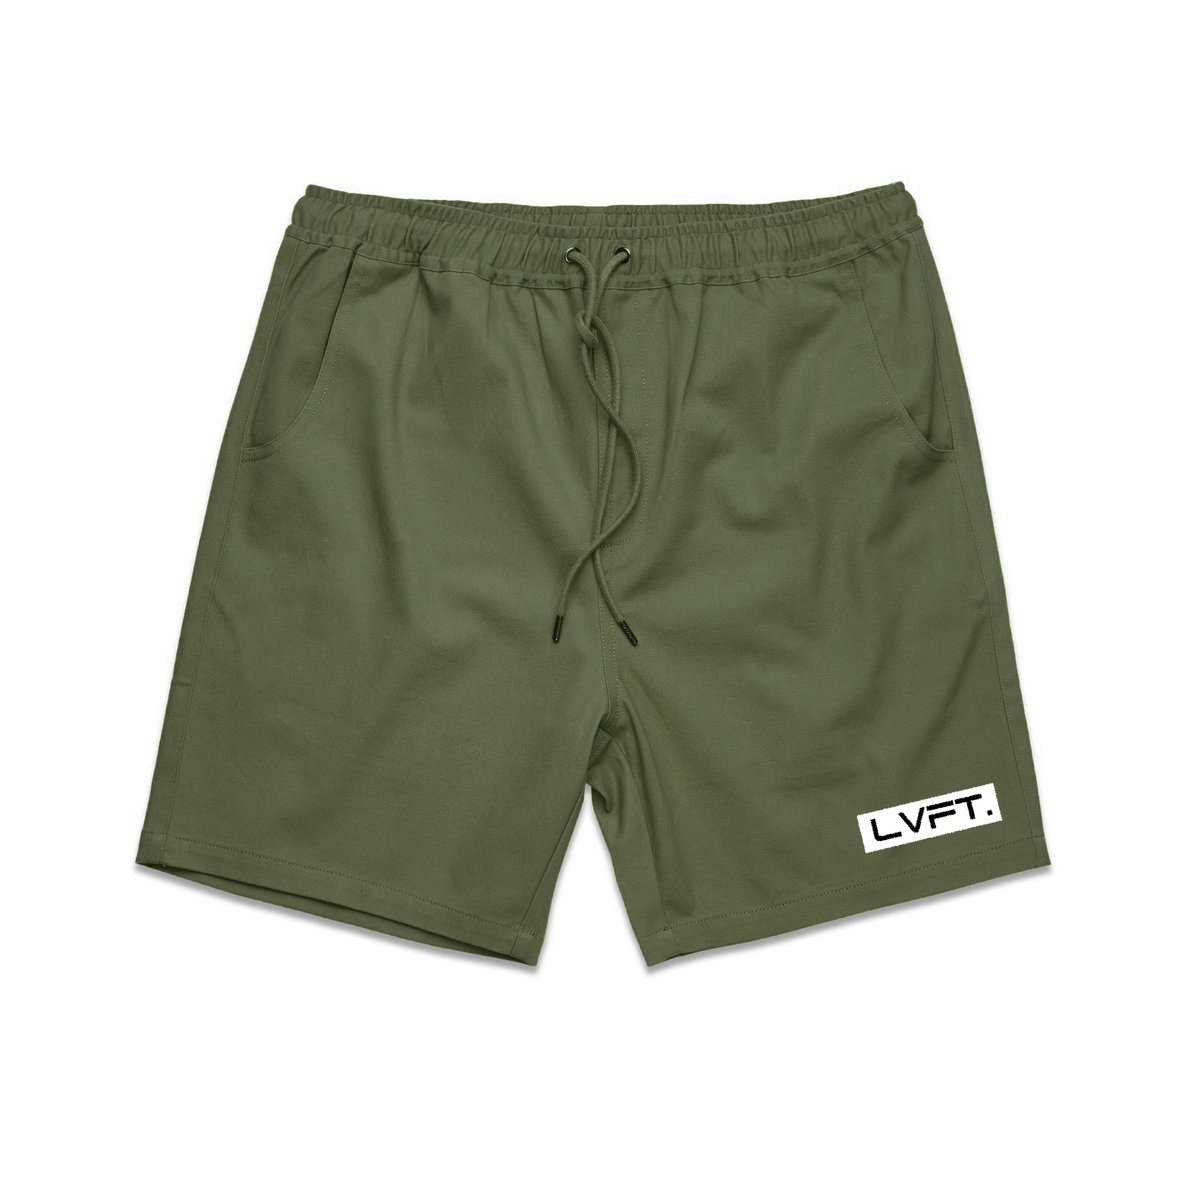 Live Fit Lifestyle Shorts-Olive